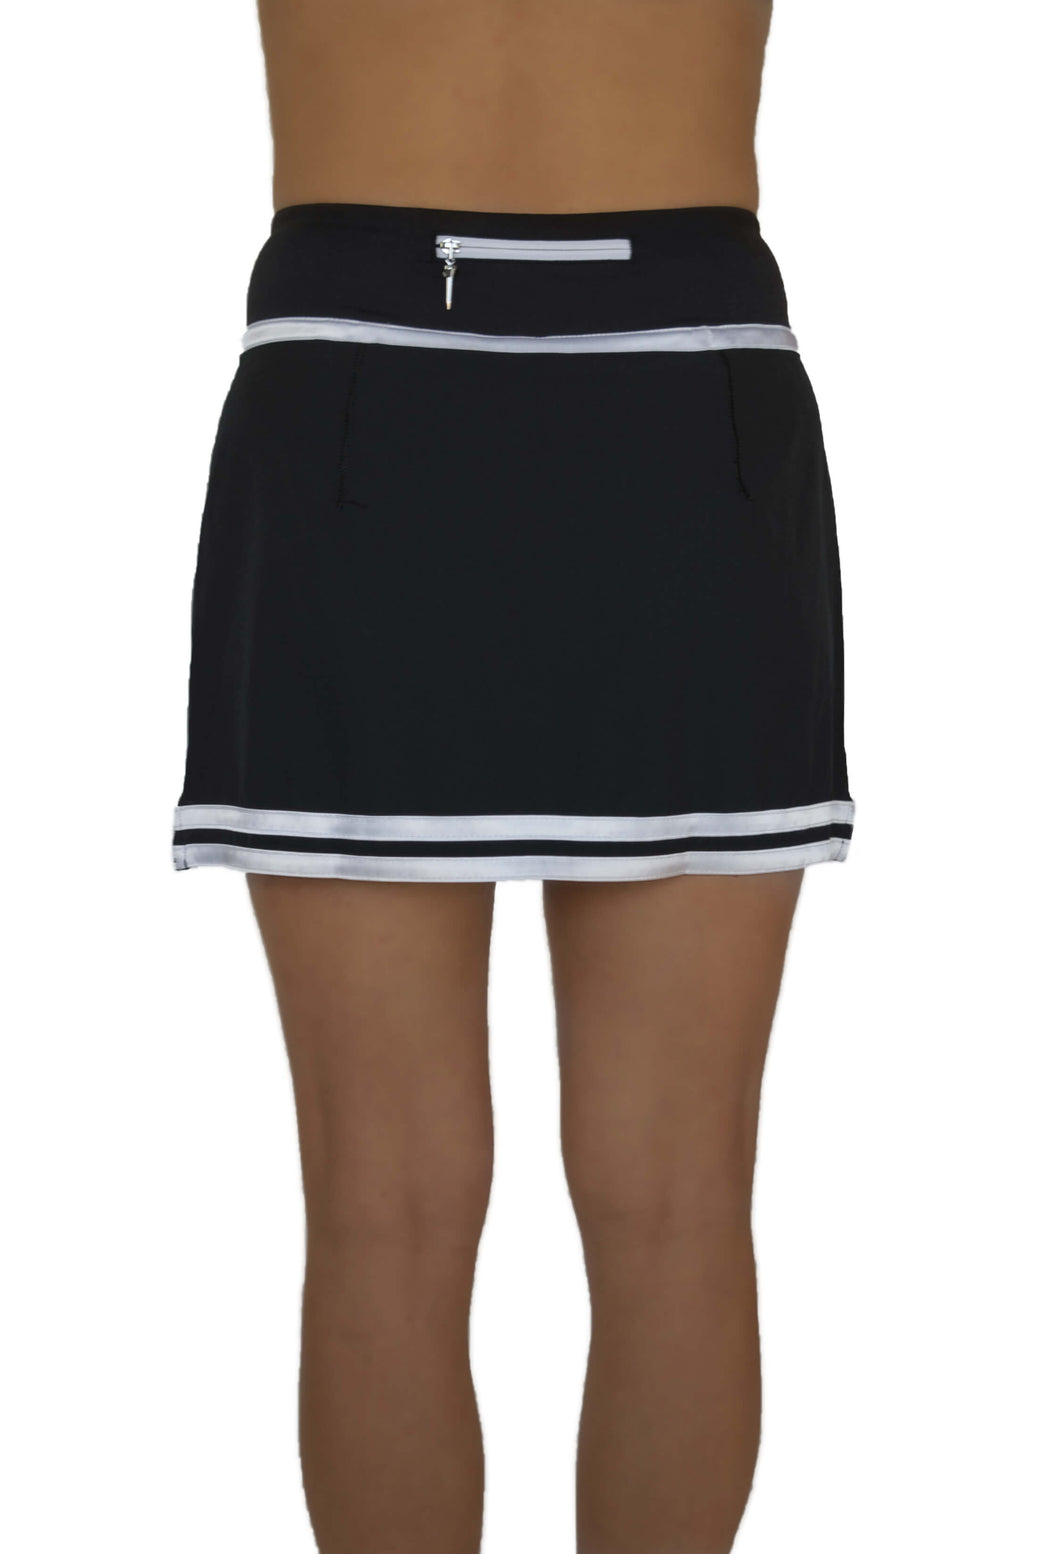 NEW! Striped Hem Golf Skirt - Black with White Stripes - FlirTee Golf